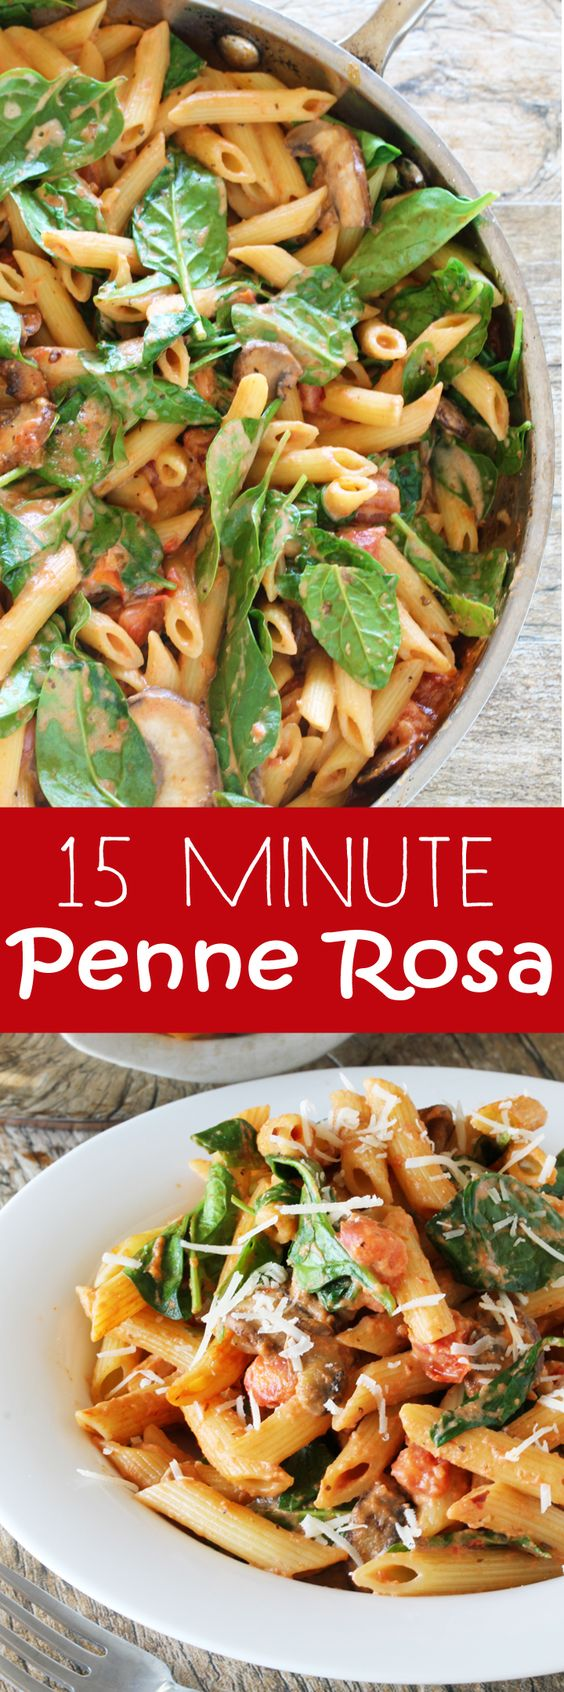 A creamy tomato pasta with a kick! Penne Rosa is a 15 minute meal that is sure to please!